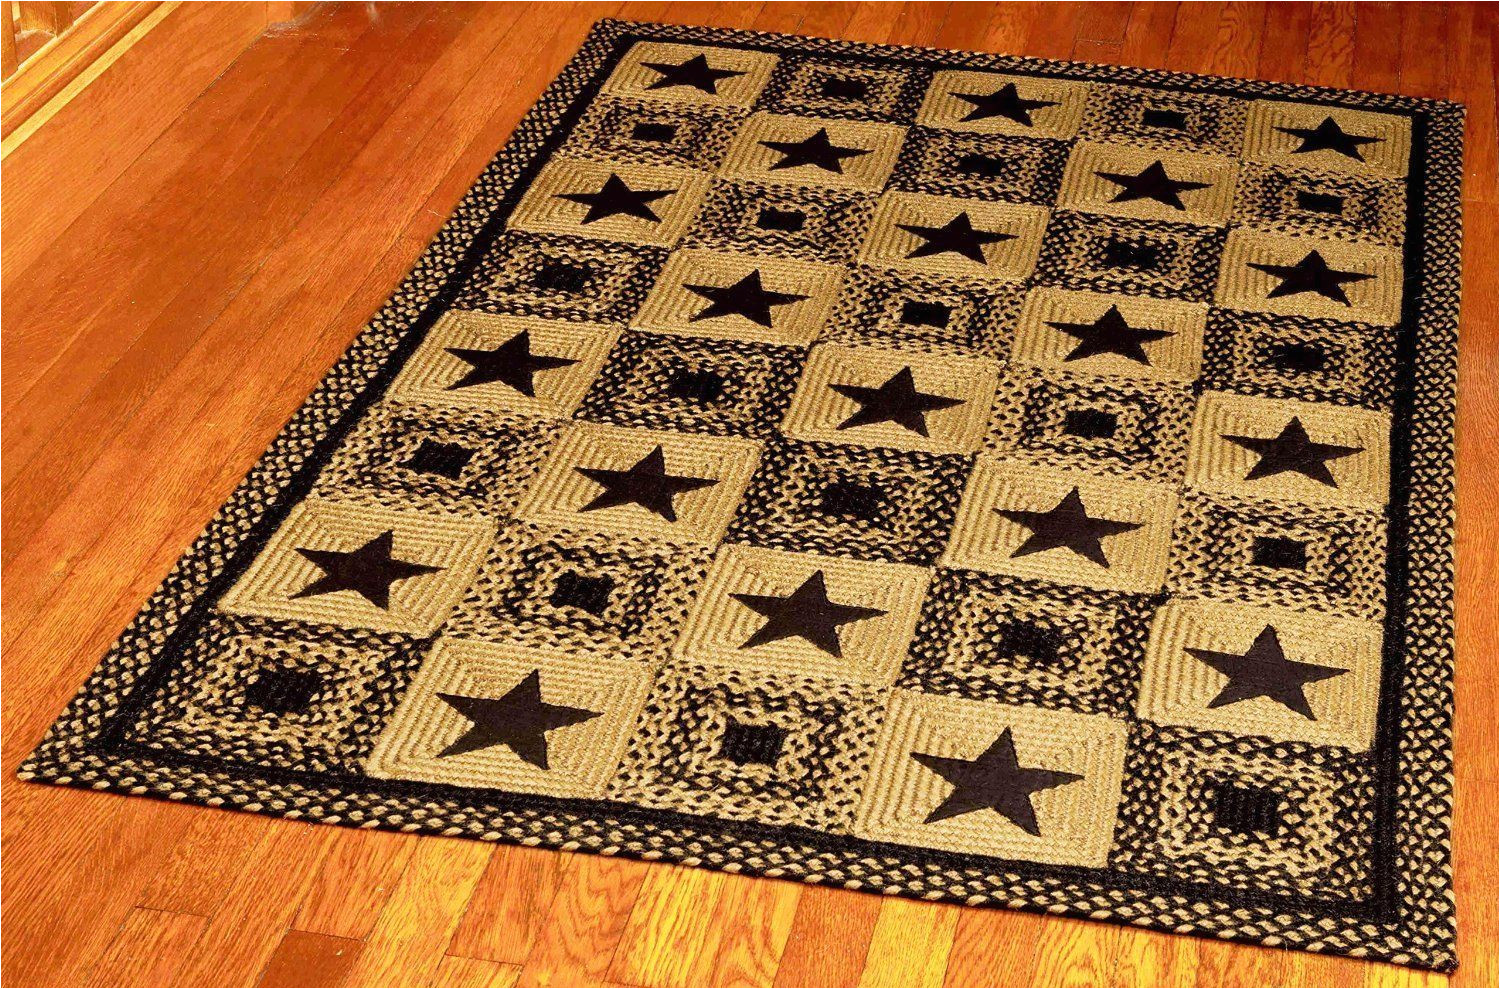 ihf home decor rectangle area accent braided jute rug 5 x 8 country star black design new you can find more details by visiting the image link